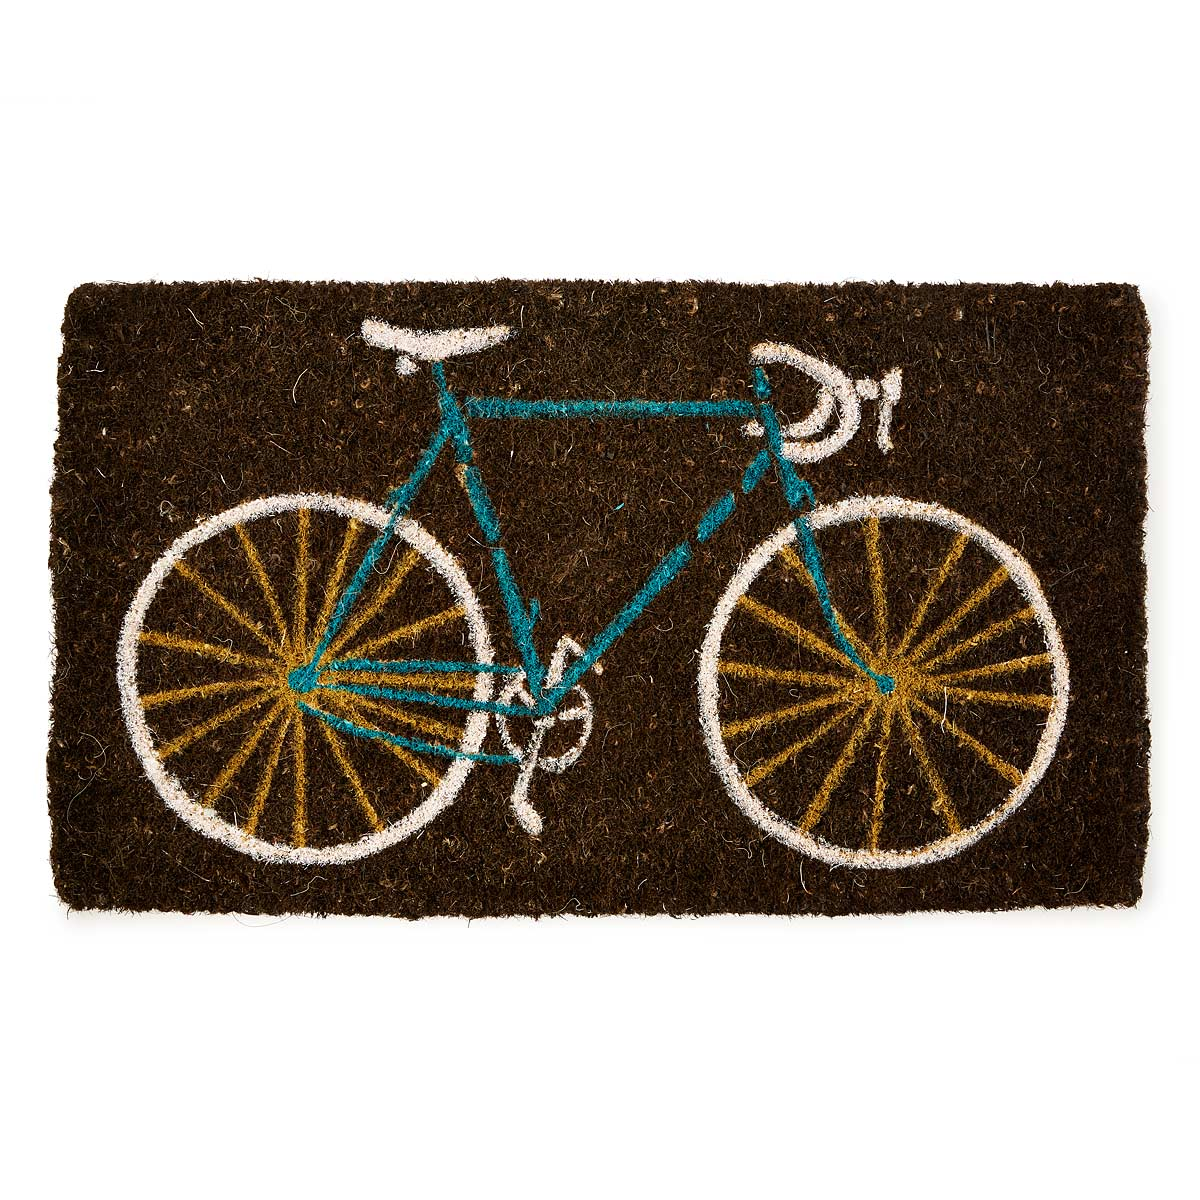 bike doormat bike doormat bicycle home decor coconut home decor lookbook uncommongoods